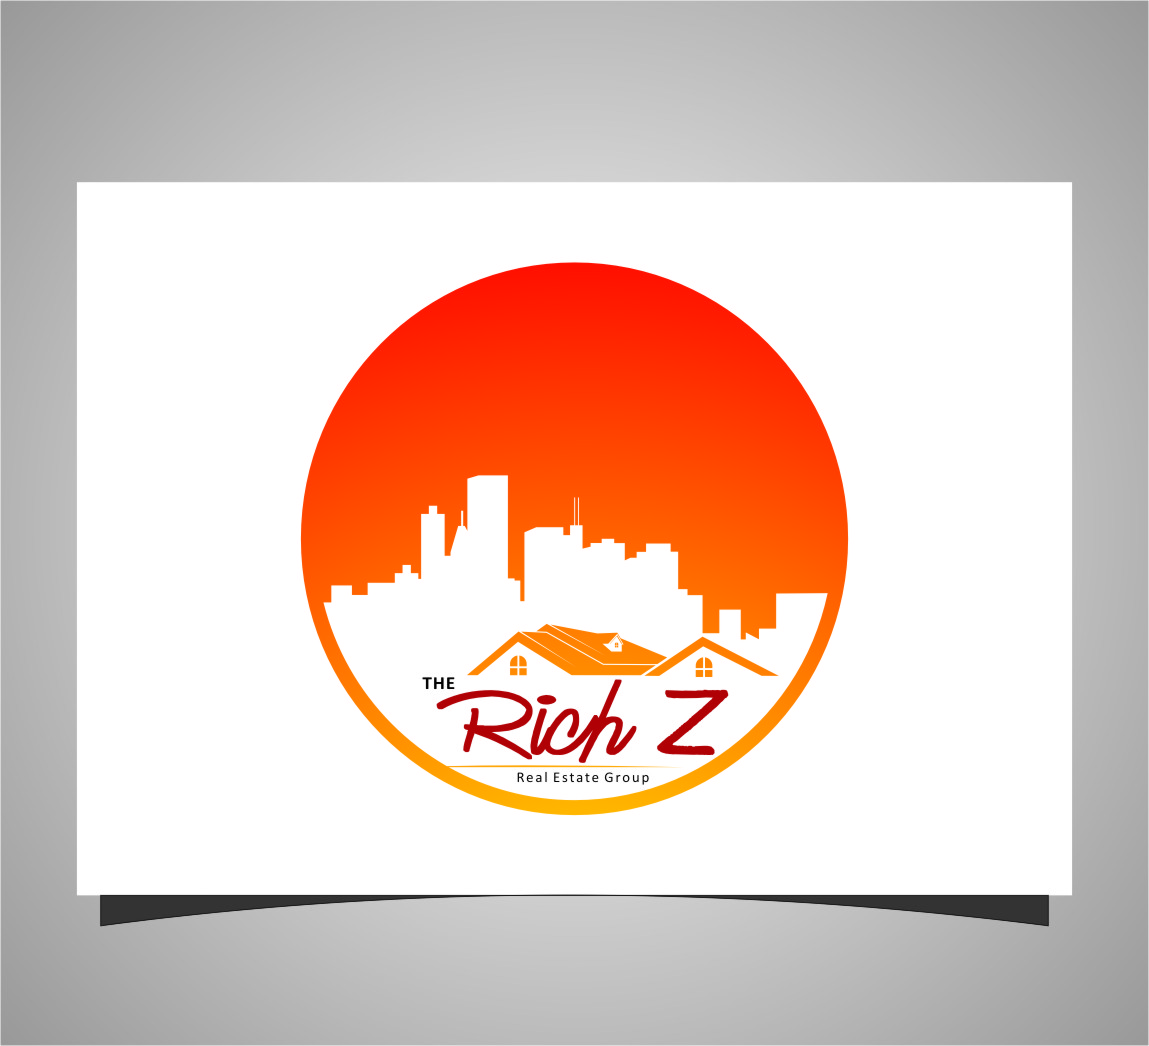 Logo Design by Ngepet_art - Entry No. 200 in the Logo Design Contest The Rich Z. Real Estate Group Logo Design.